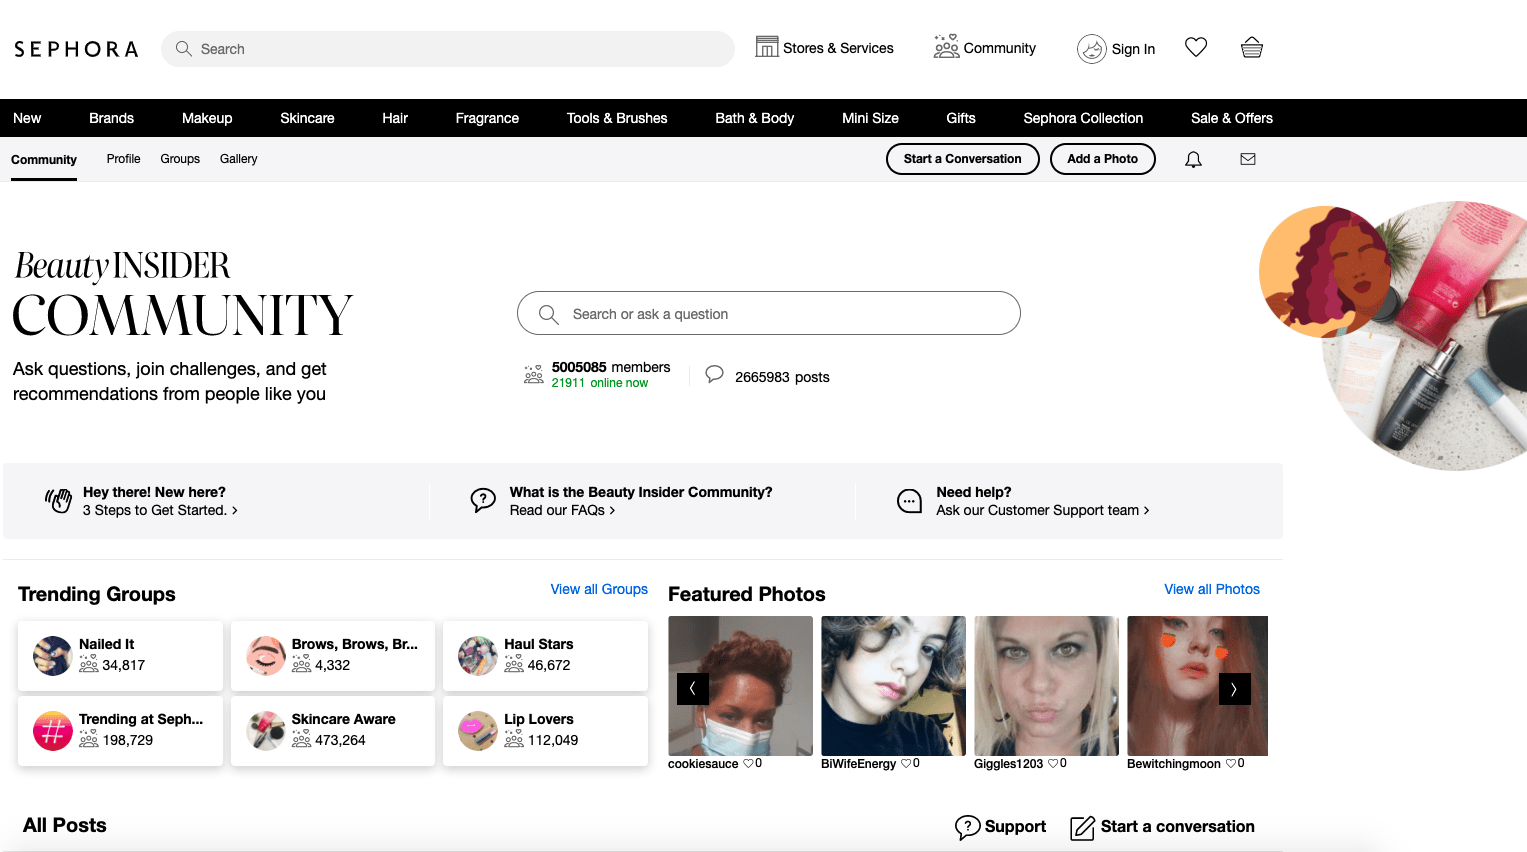 An example of a Community of Product - Sephora's Beauty Insider Community